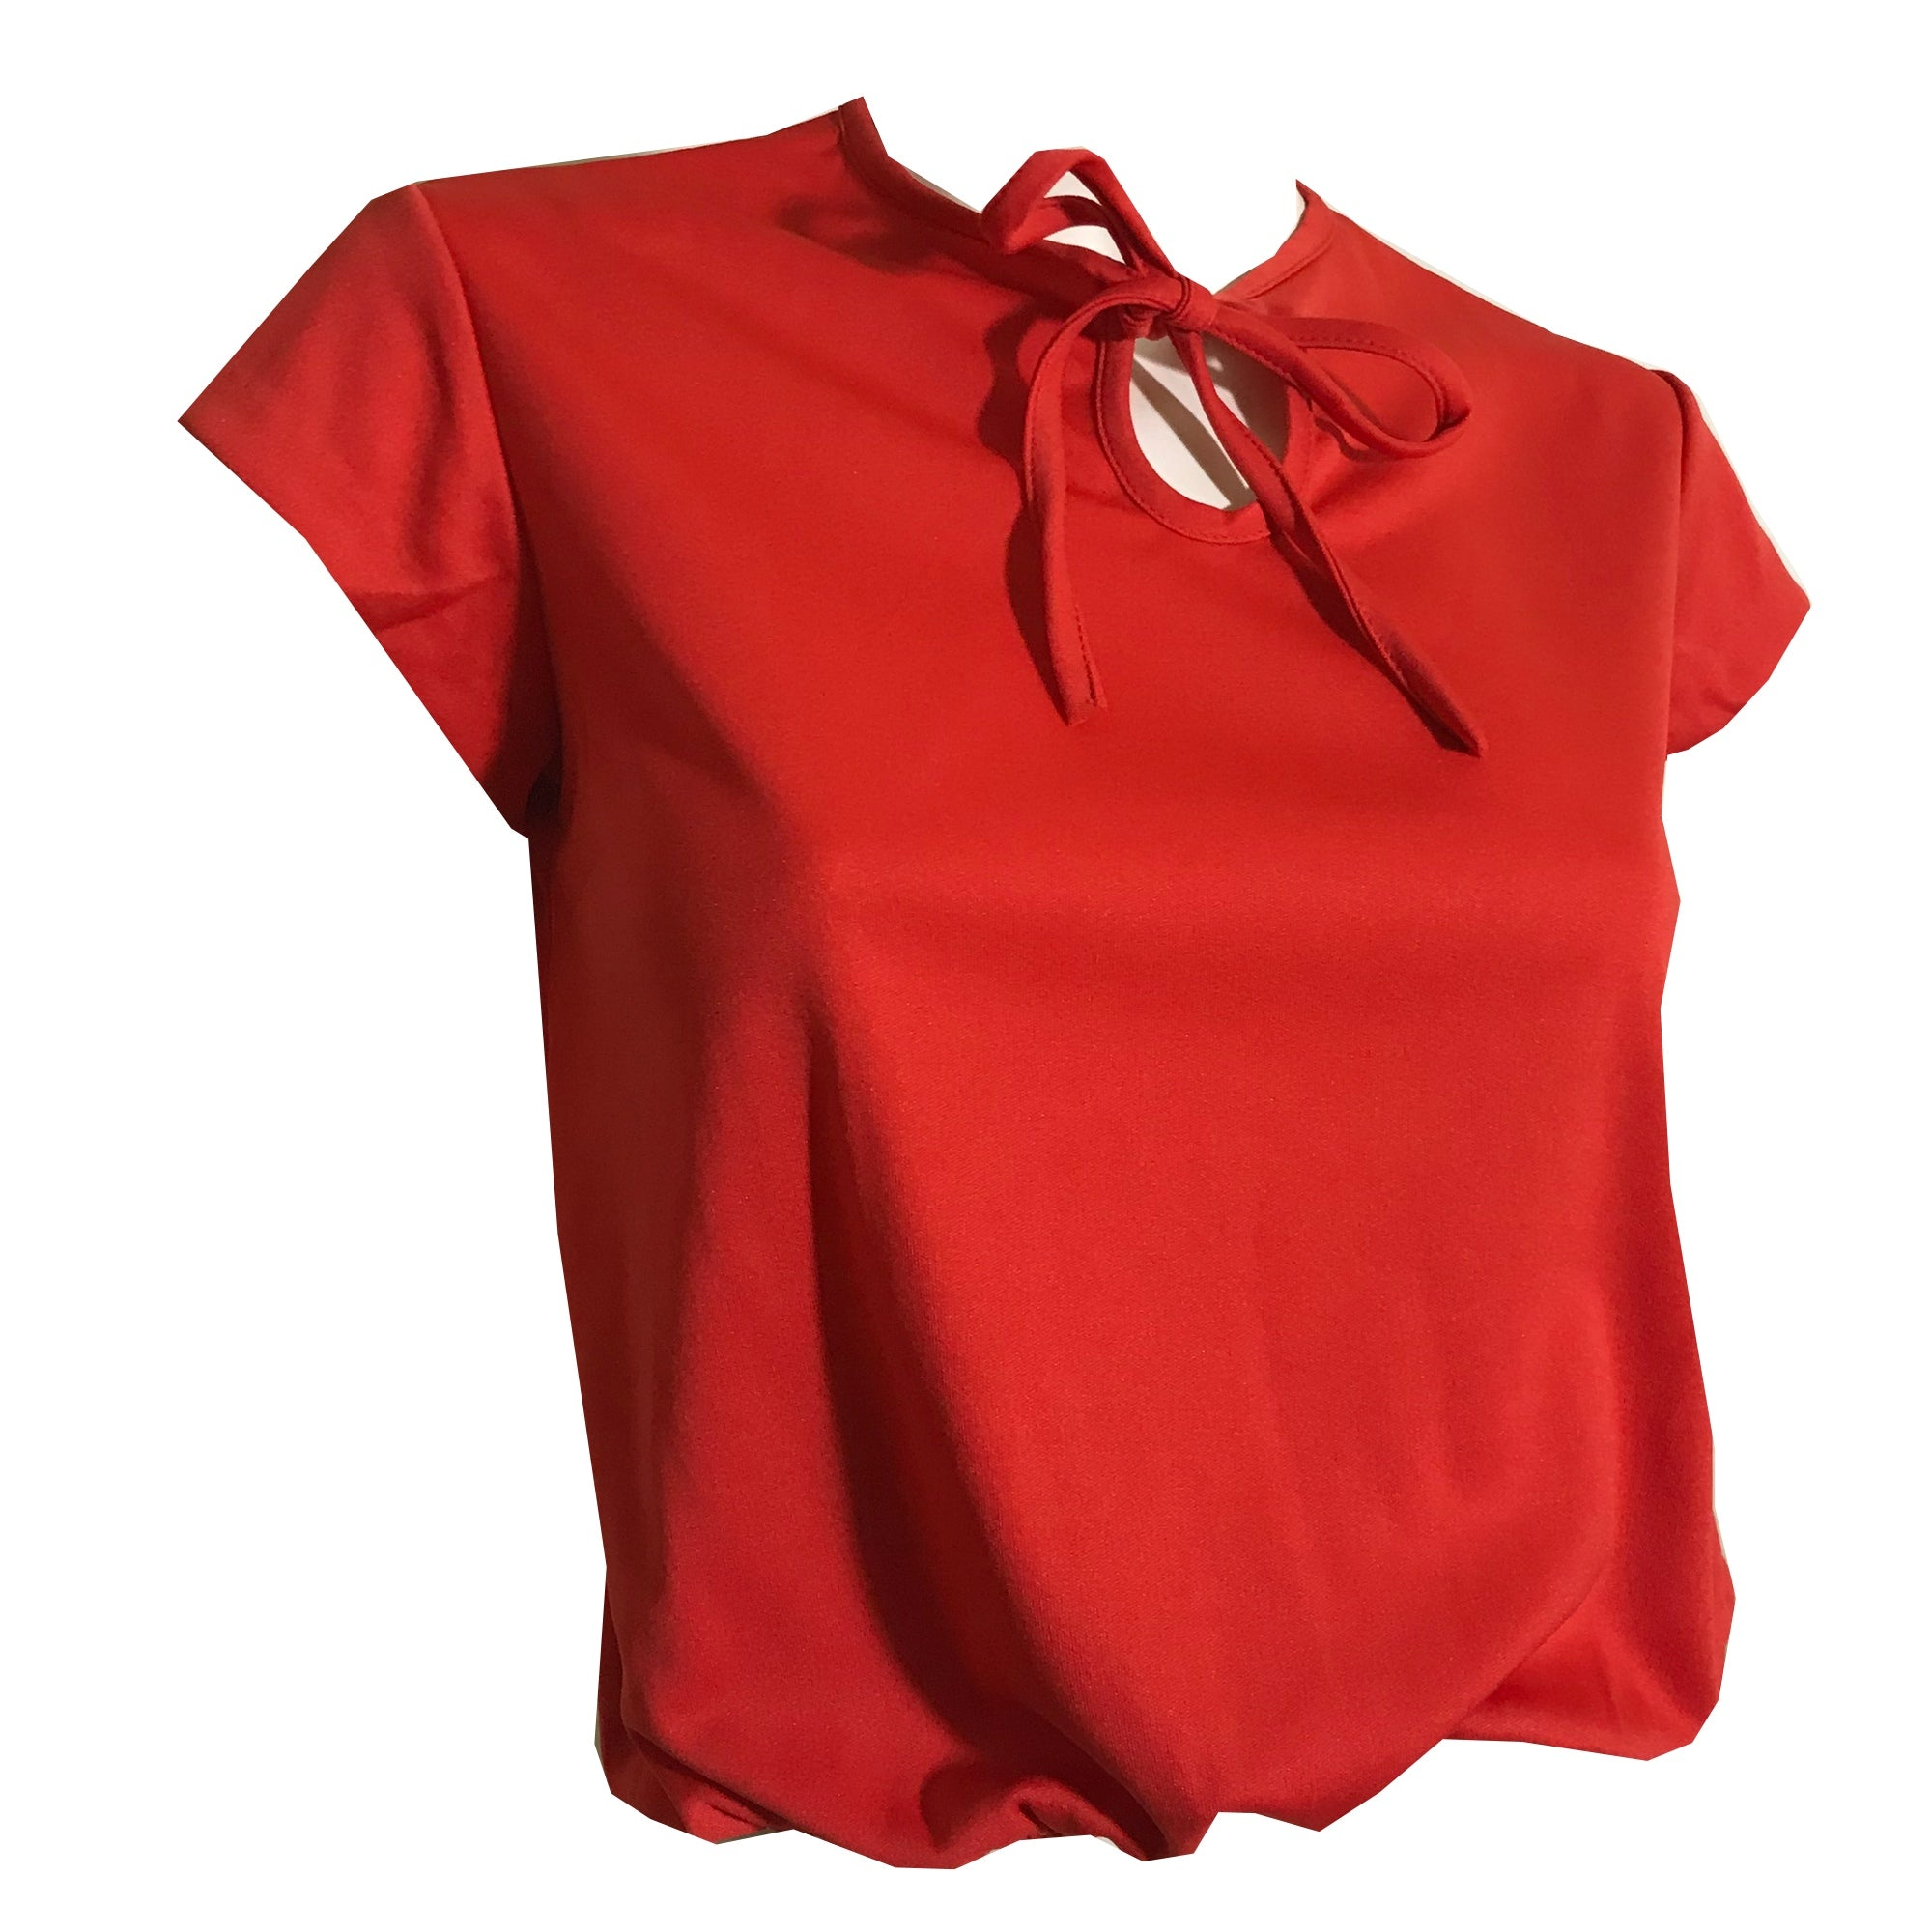 Rose Red Keyhole Neckline Shirt with Bow circa 1970s